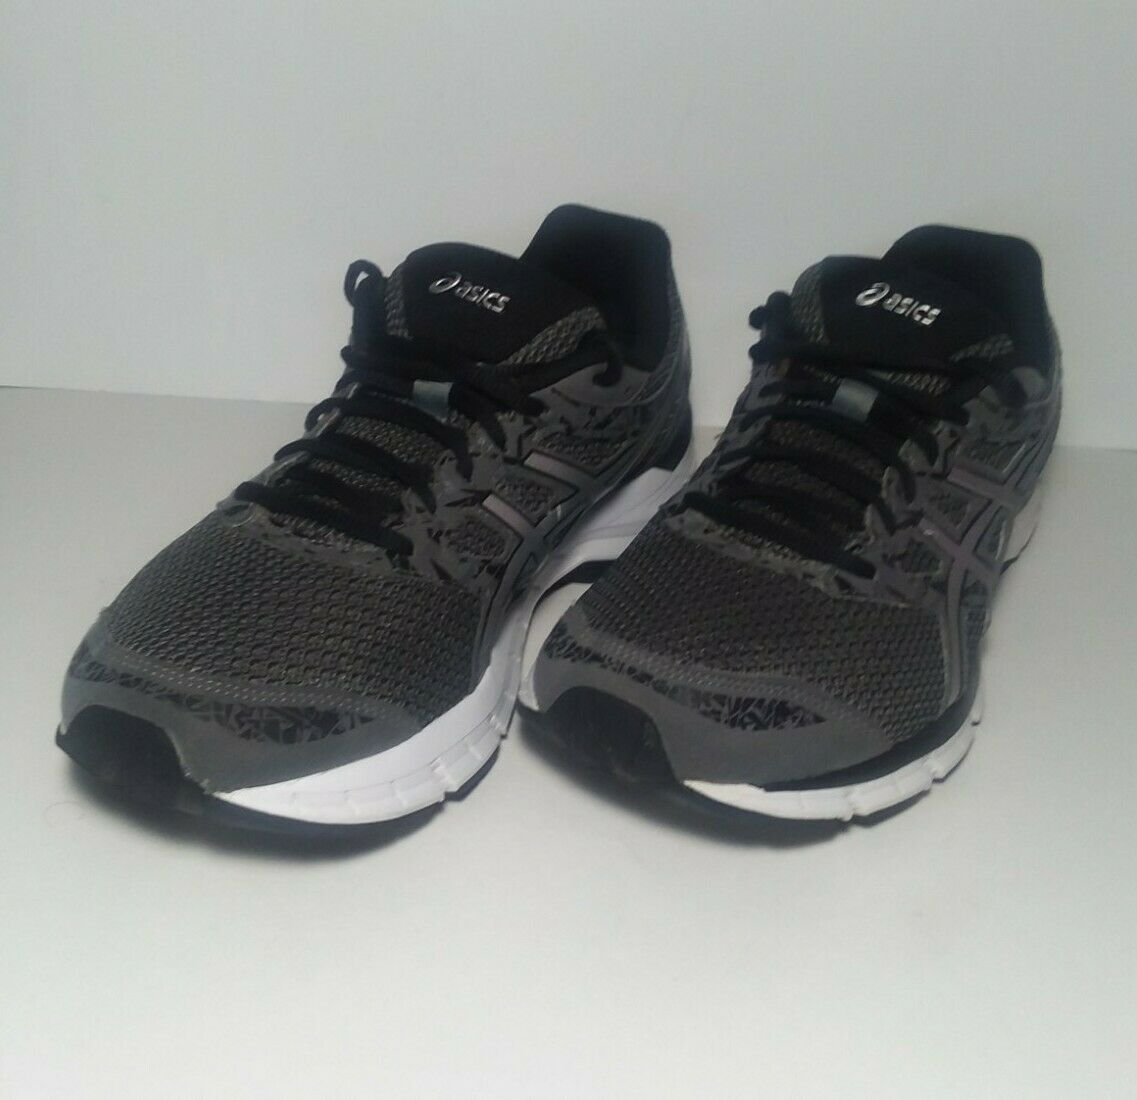 ASICS GEL-Excite 4 Men/'s Wide Running Shoes Gray+Black Athletic Casual T6F0N New